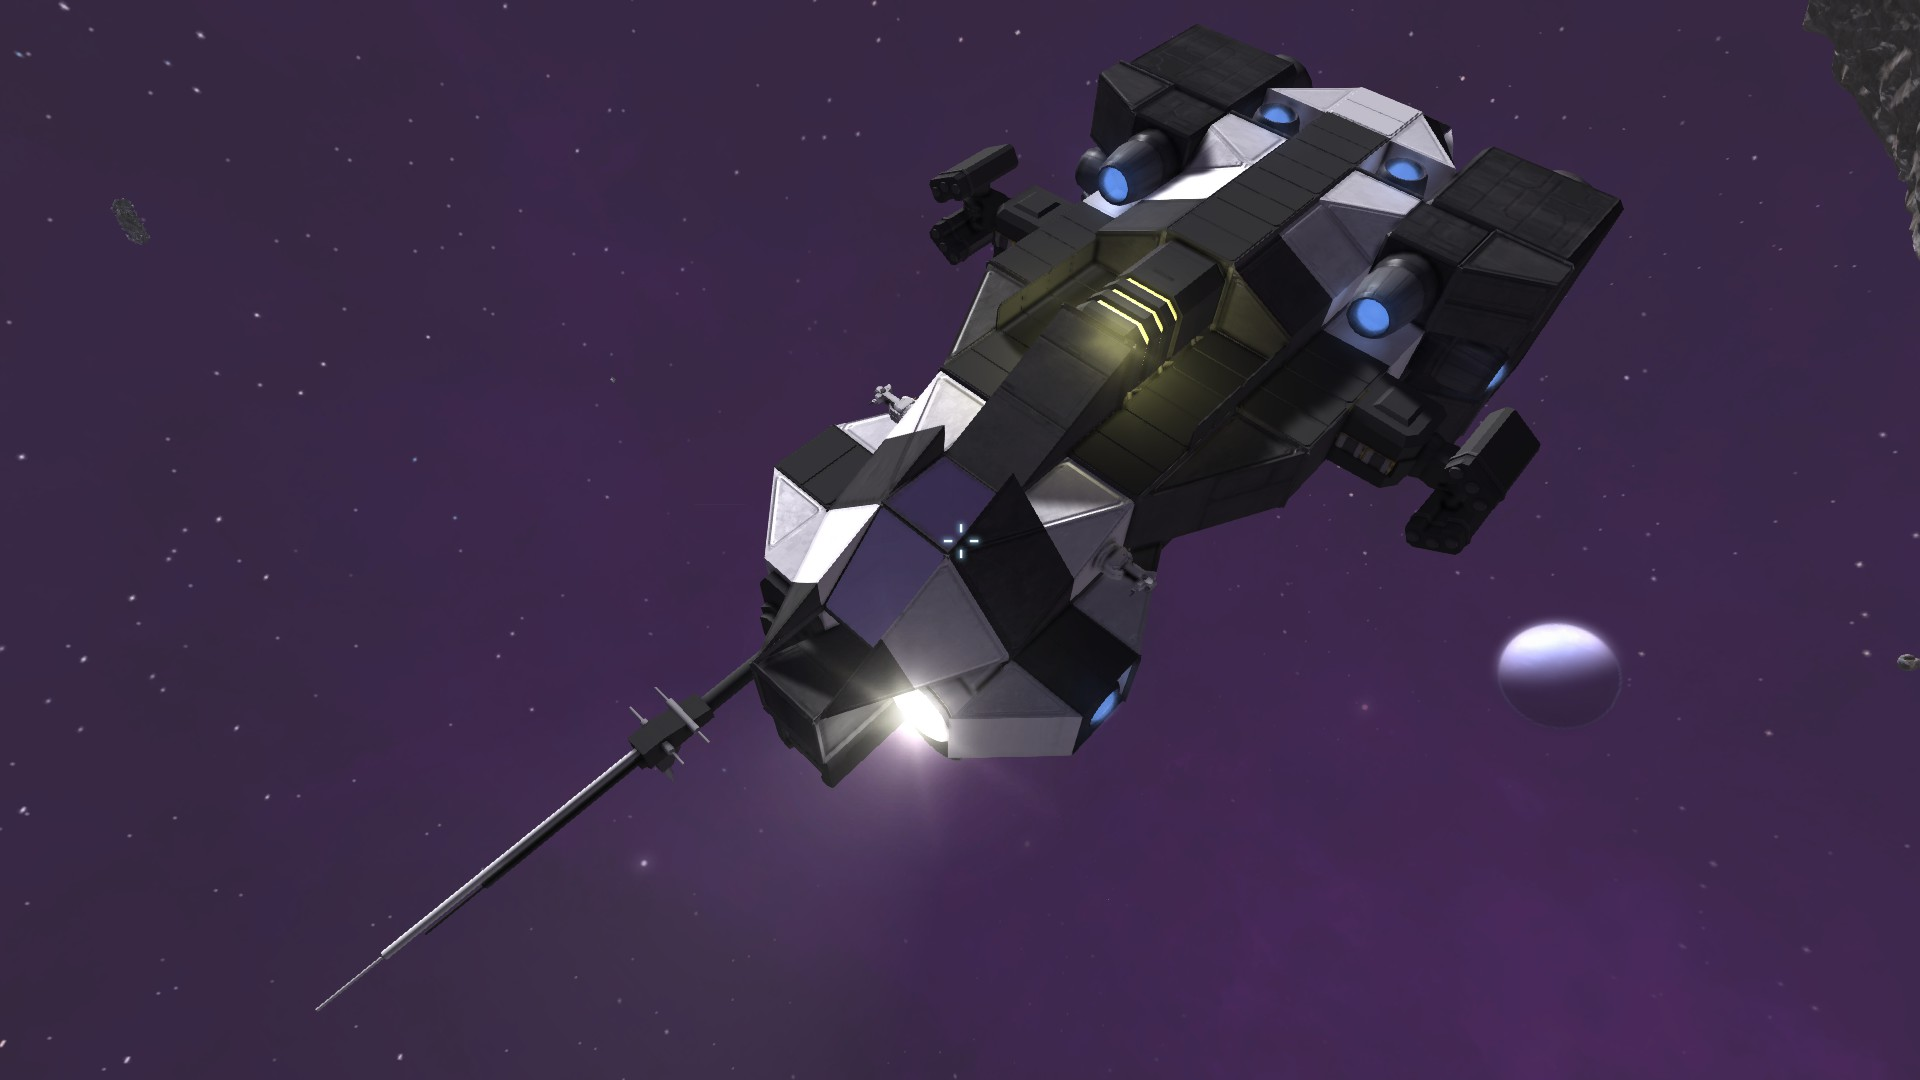 Hey engineers! show off your minimalist large ships